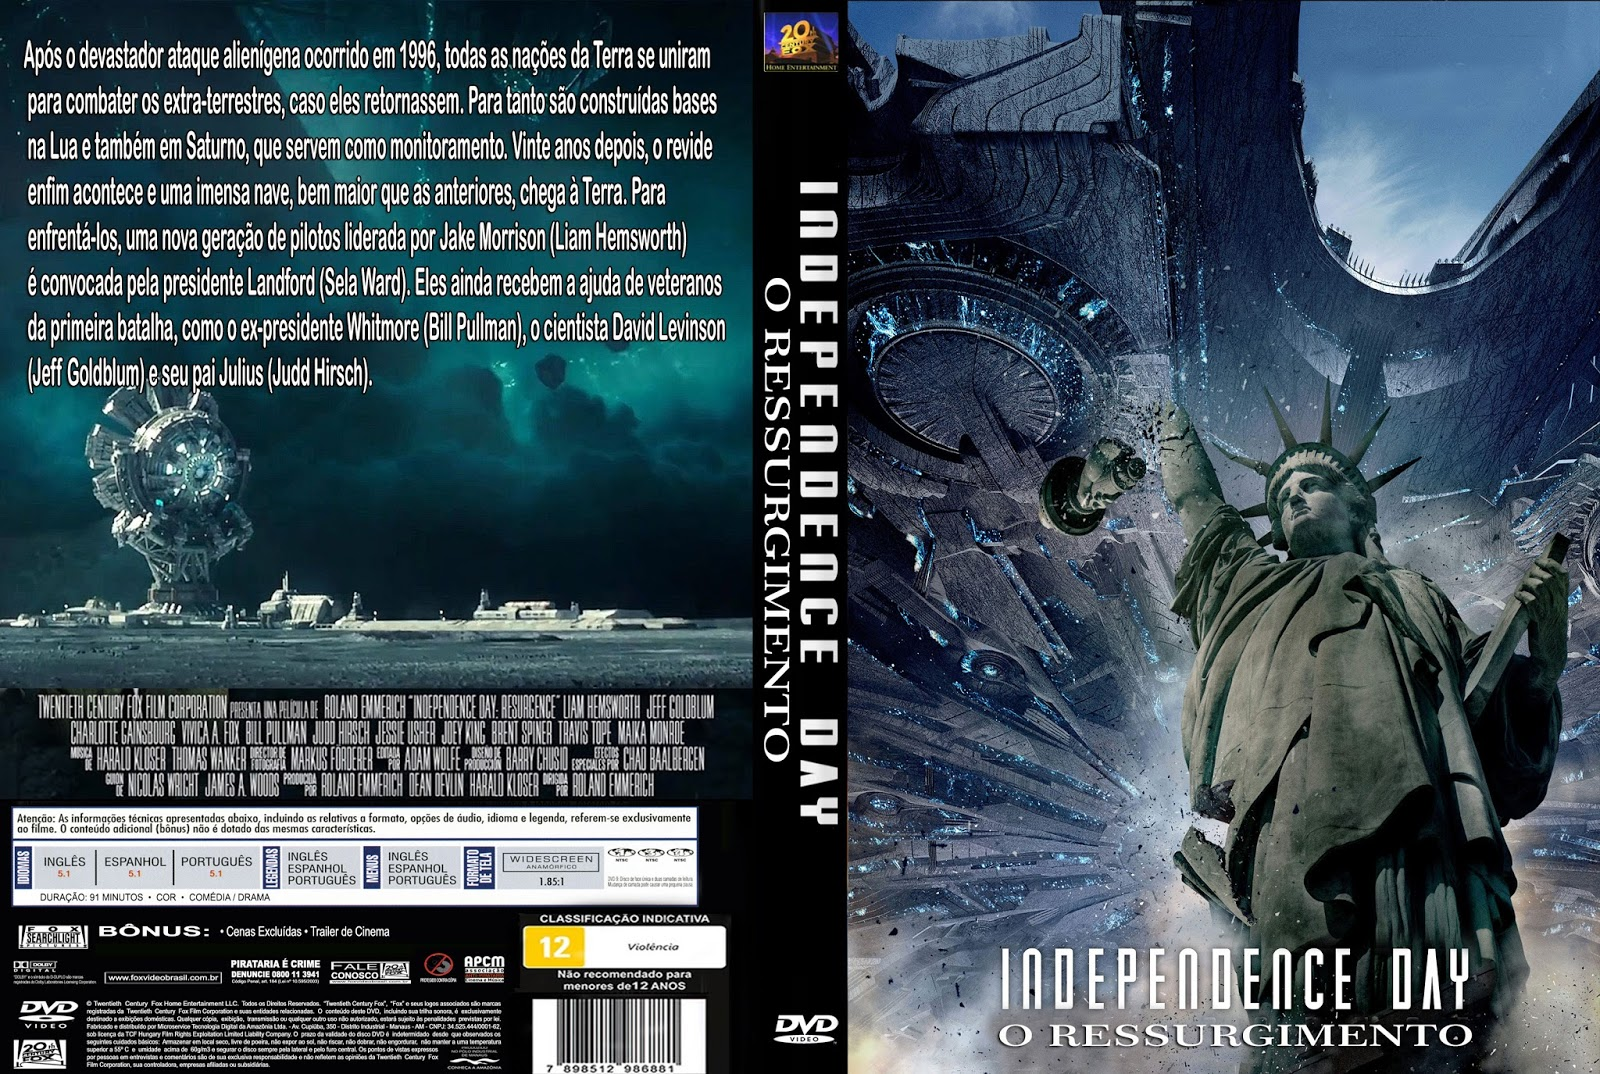 Baixar Independence Day O Ressurgimento DVD-R Baixar Independence Day O Ressurgimento DVD-R Independence 2BDay 2BO 2BRessurgimento 2BDVD R 2B  2BXANDAODOWNLOAD